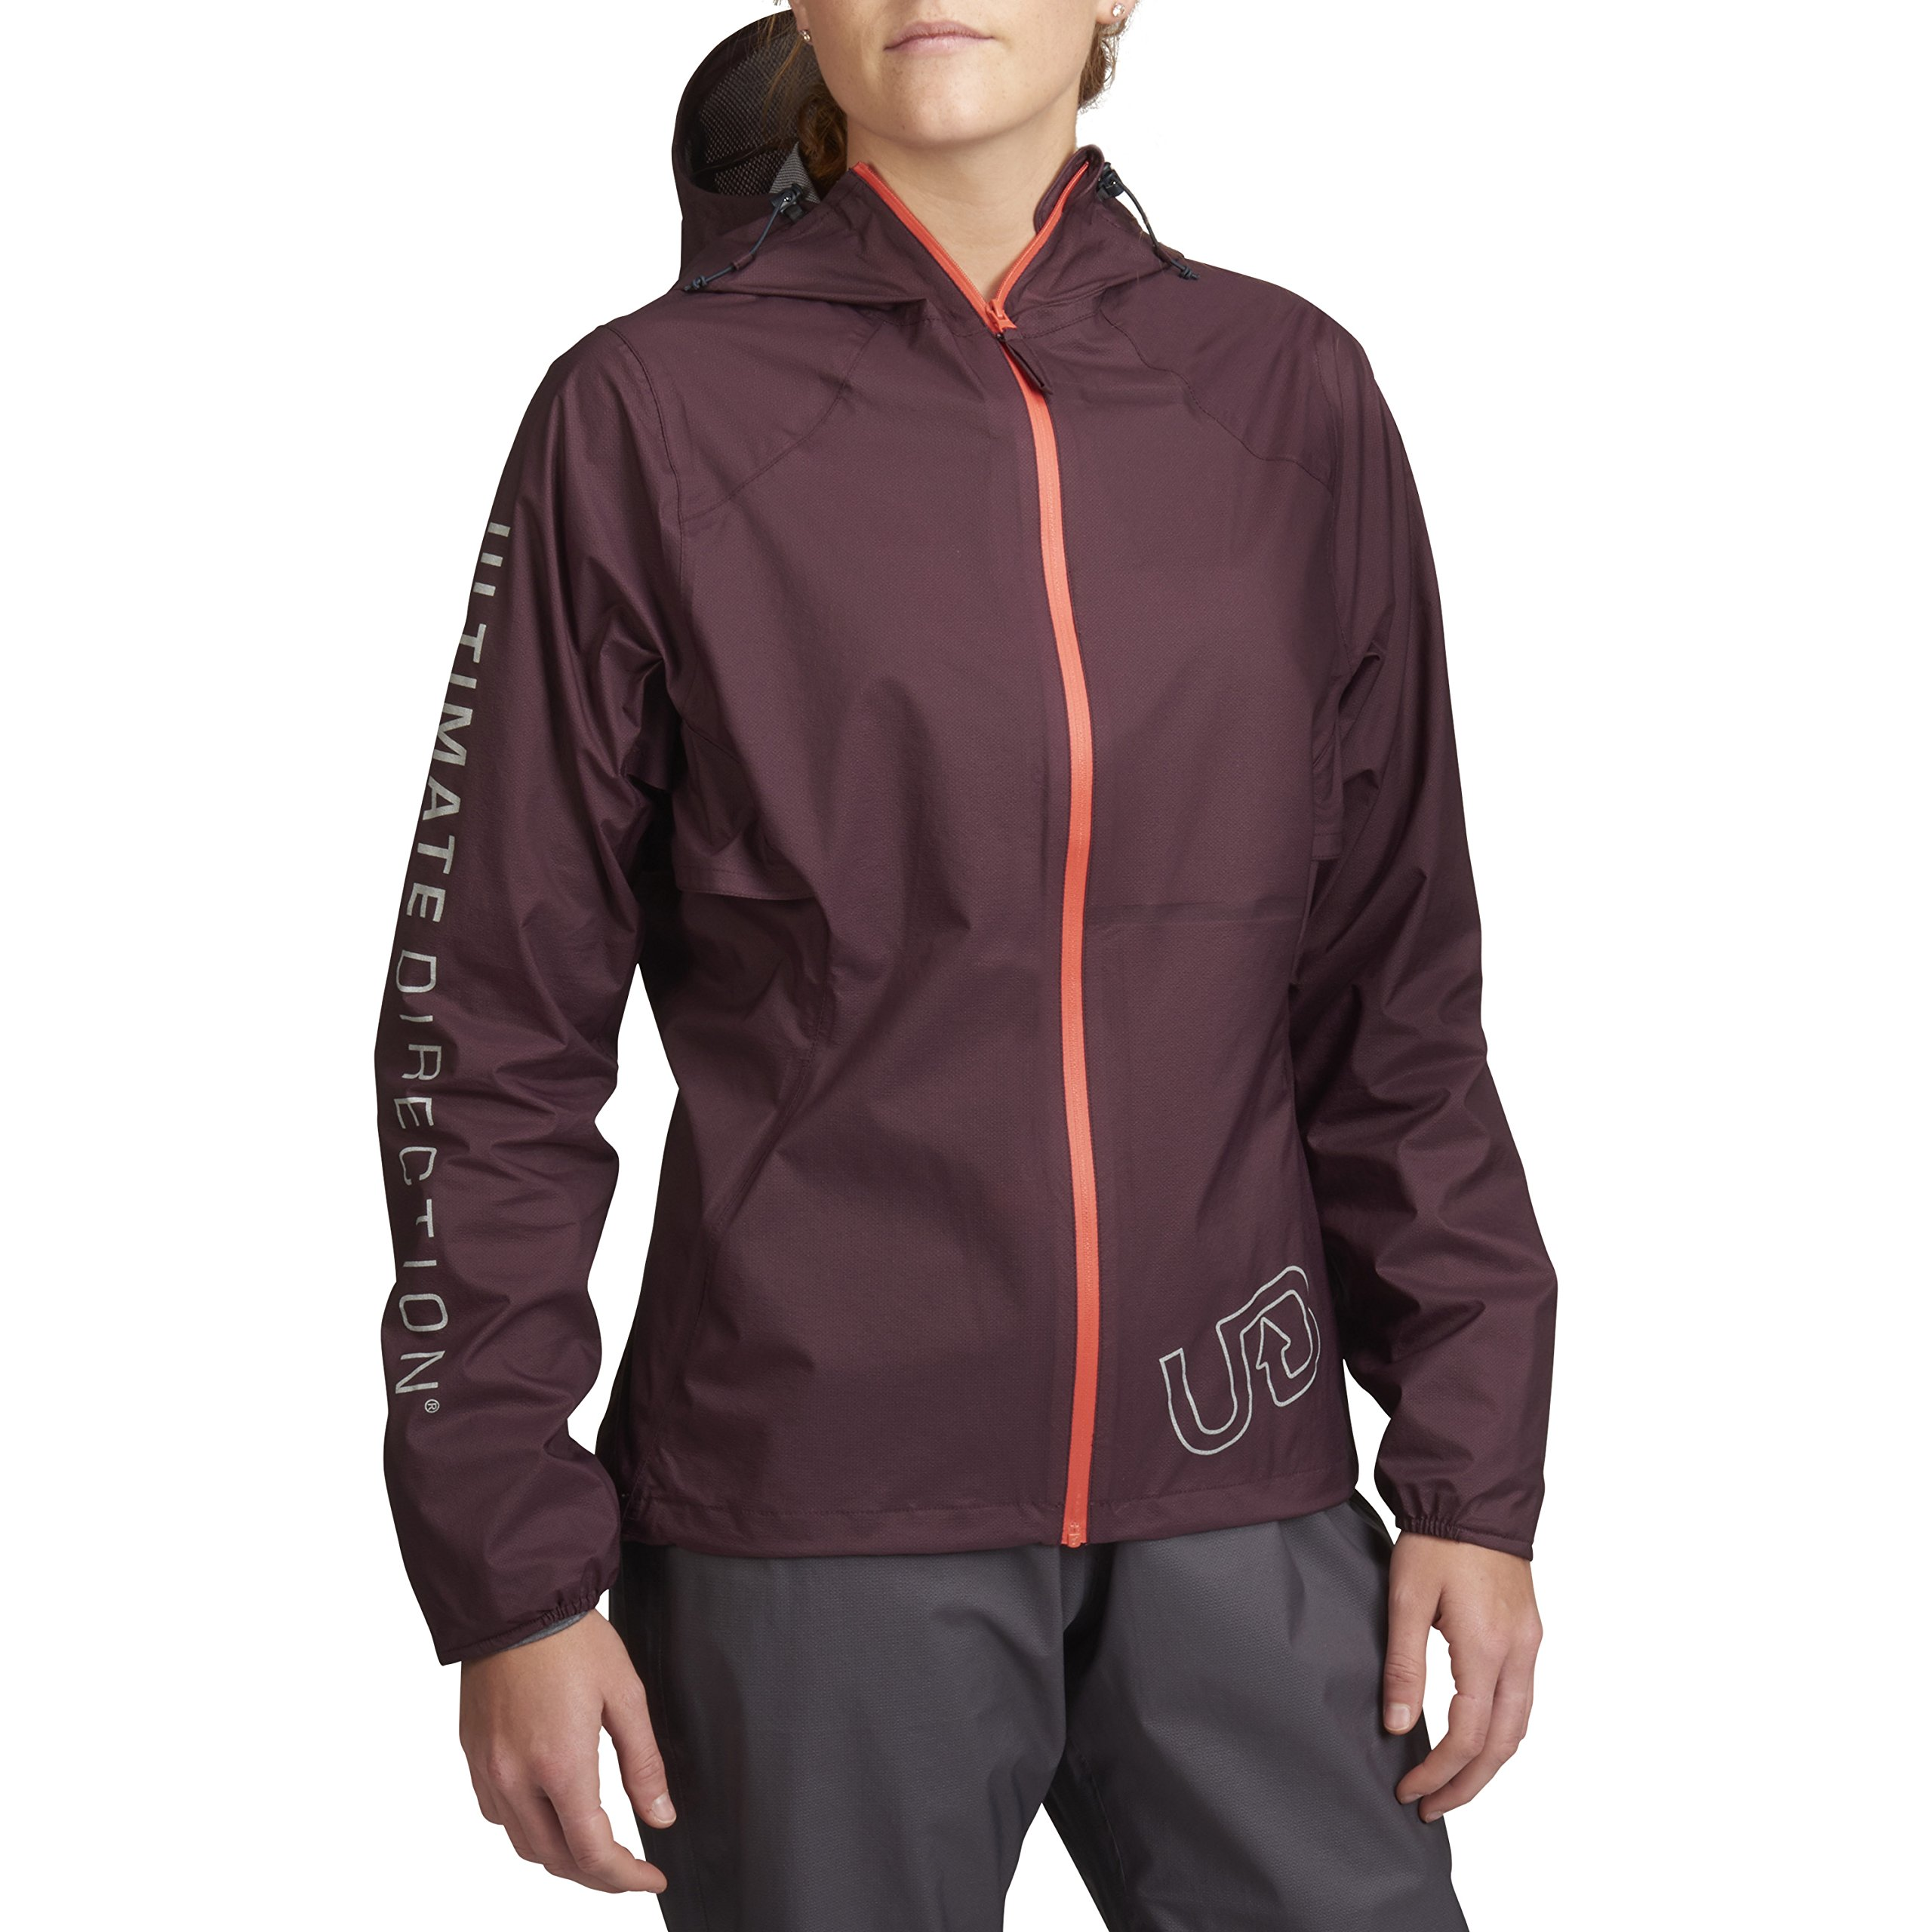 Ultimate Direction Women's Ultra Jacket V2, Fig, Small